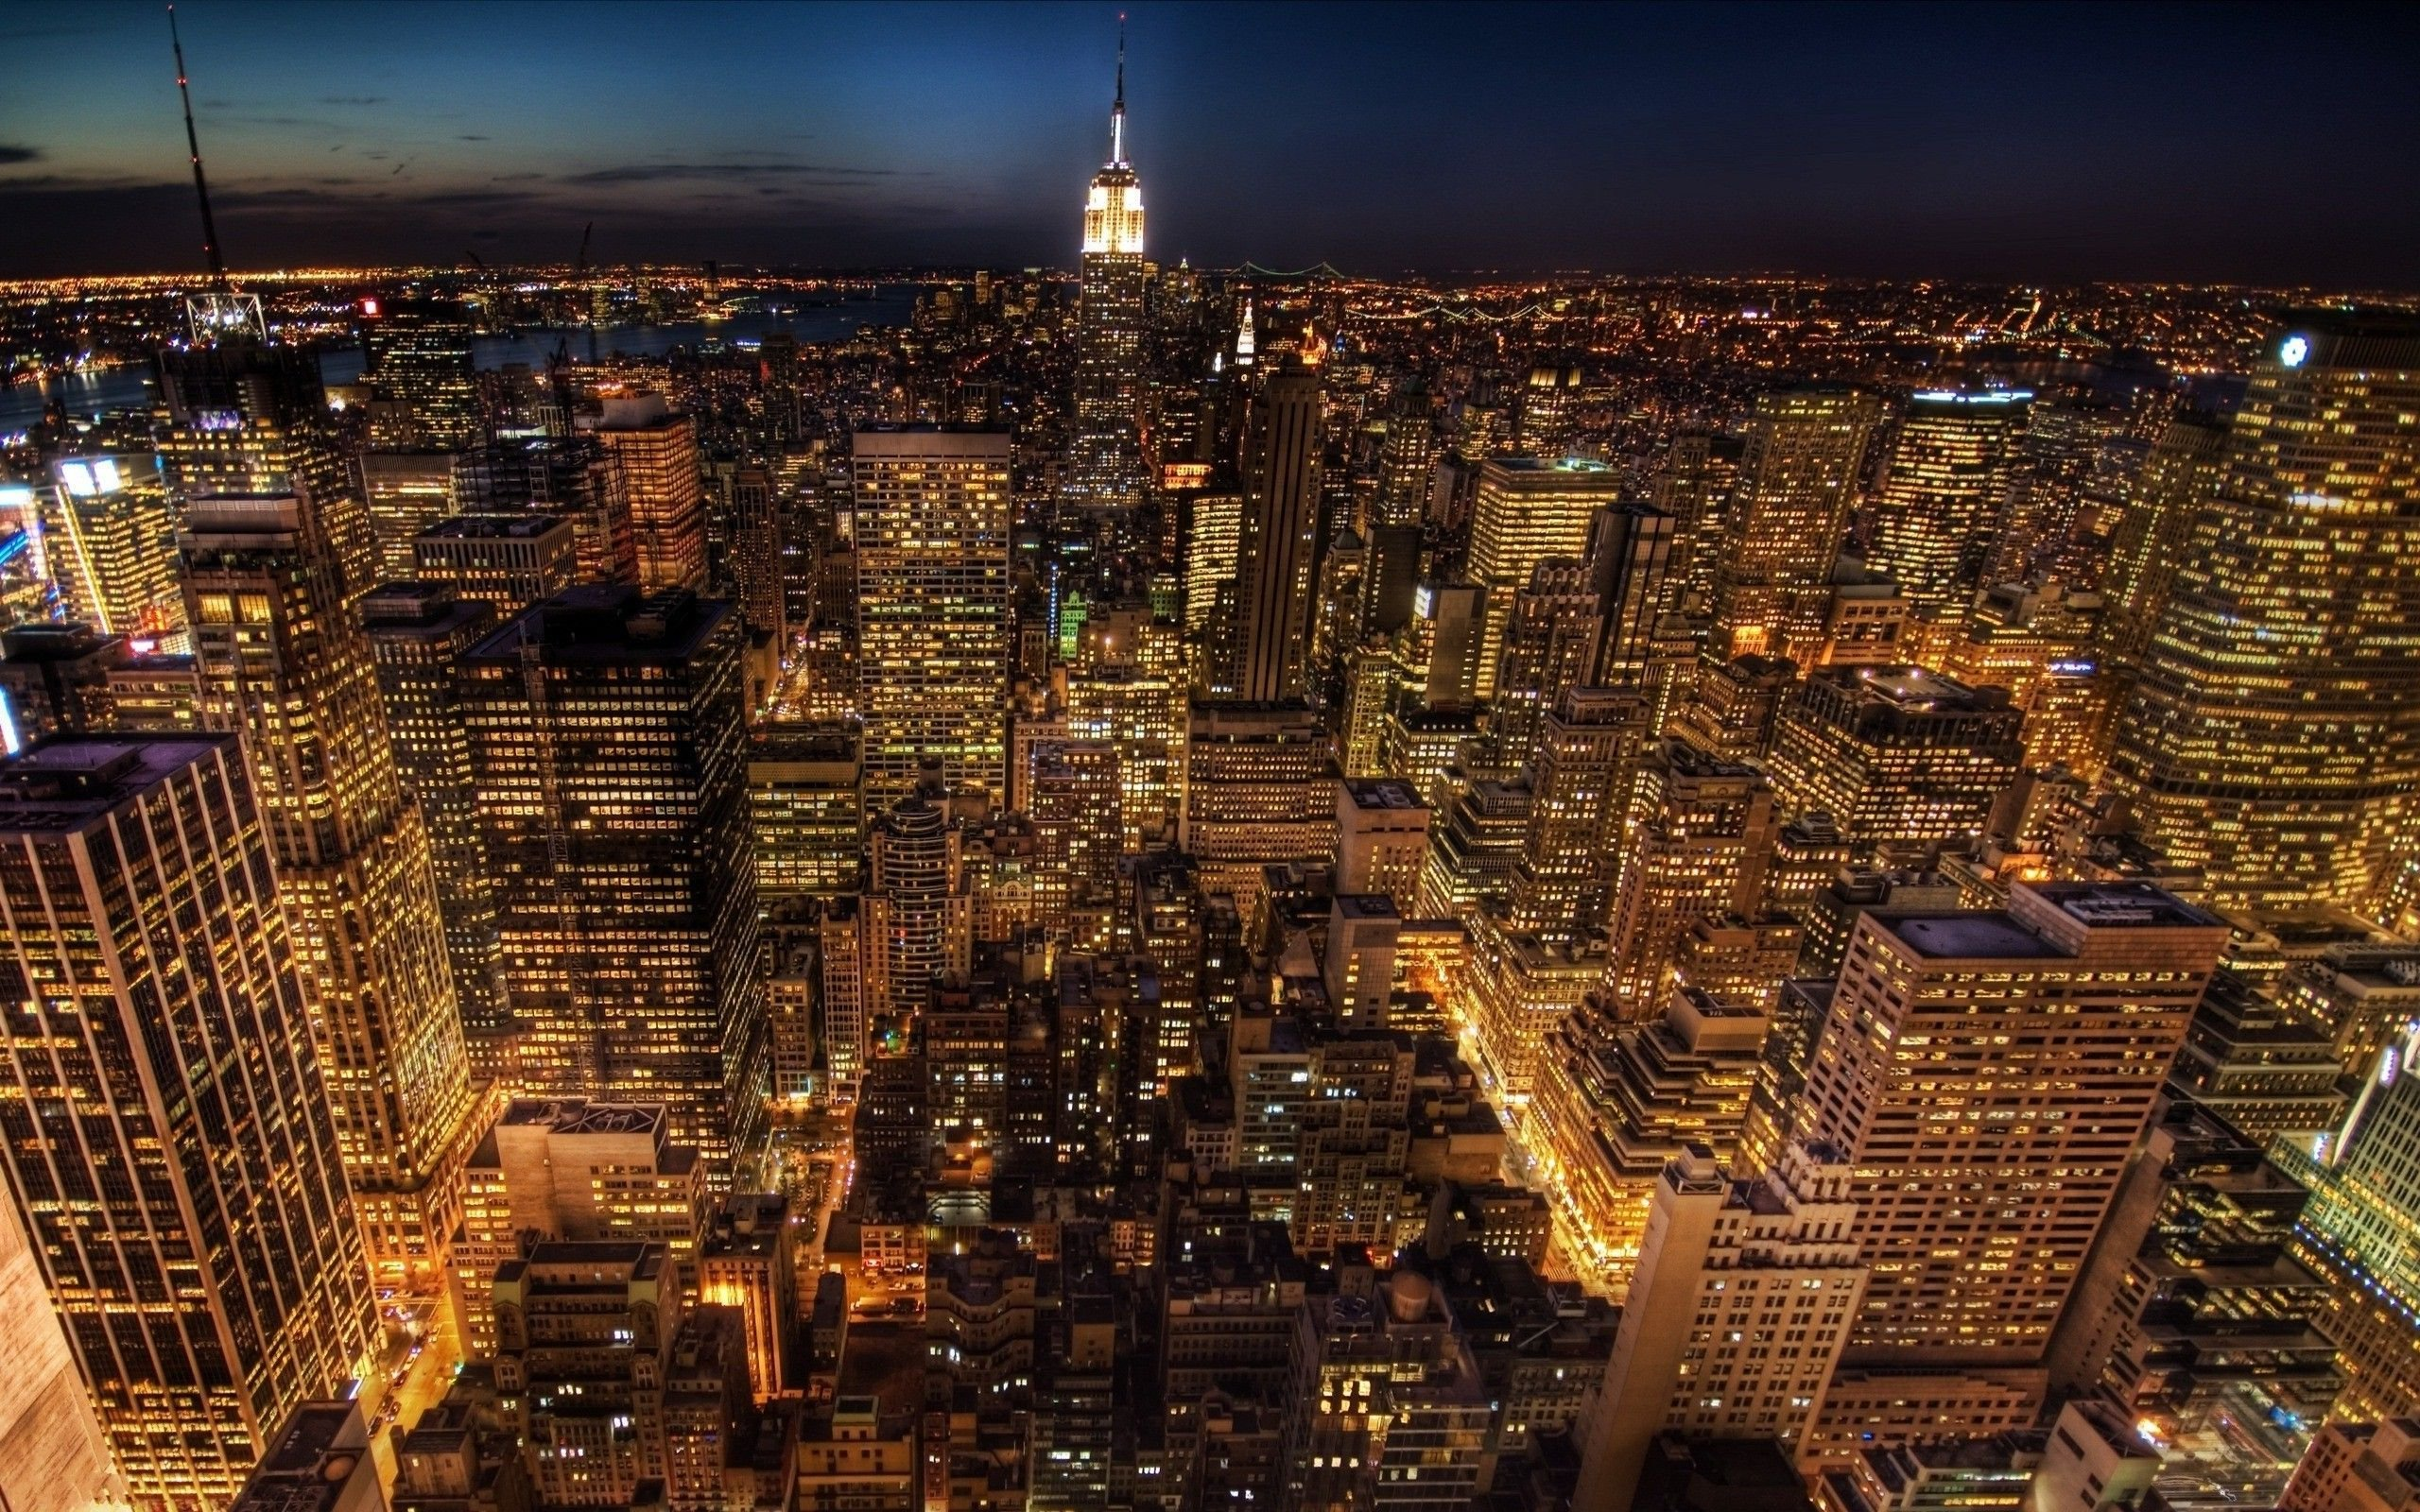 New York City Wallpaper At Night   wallpaper 2560x1600